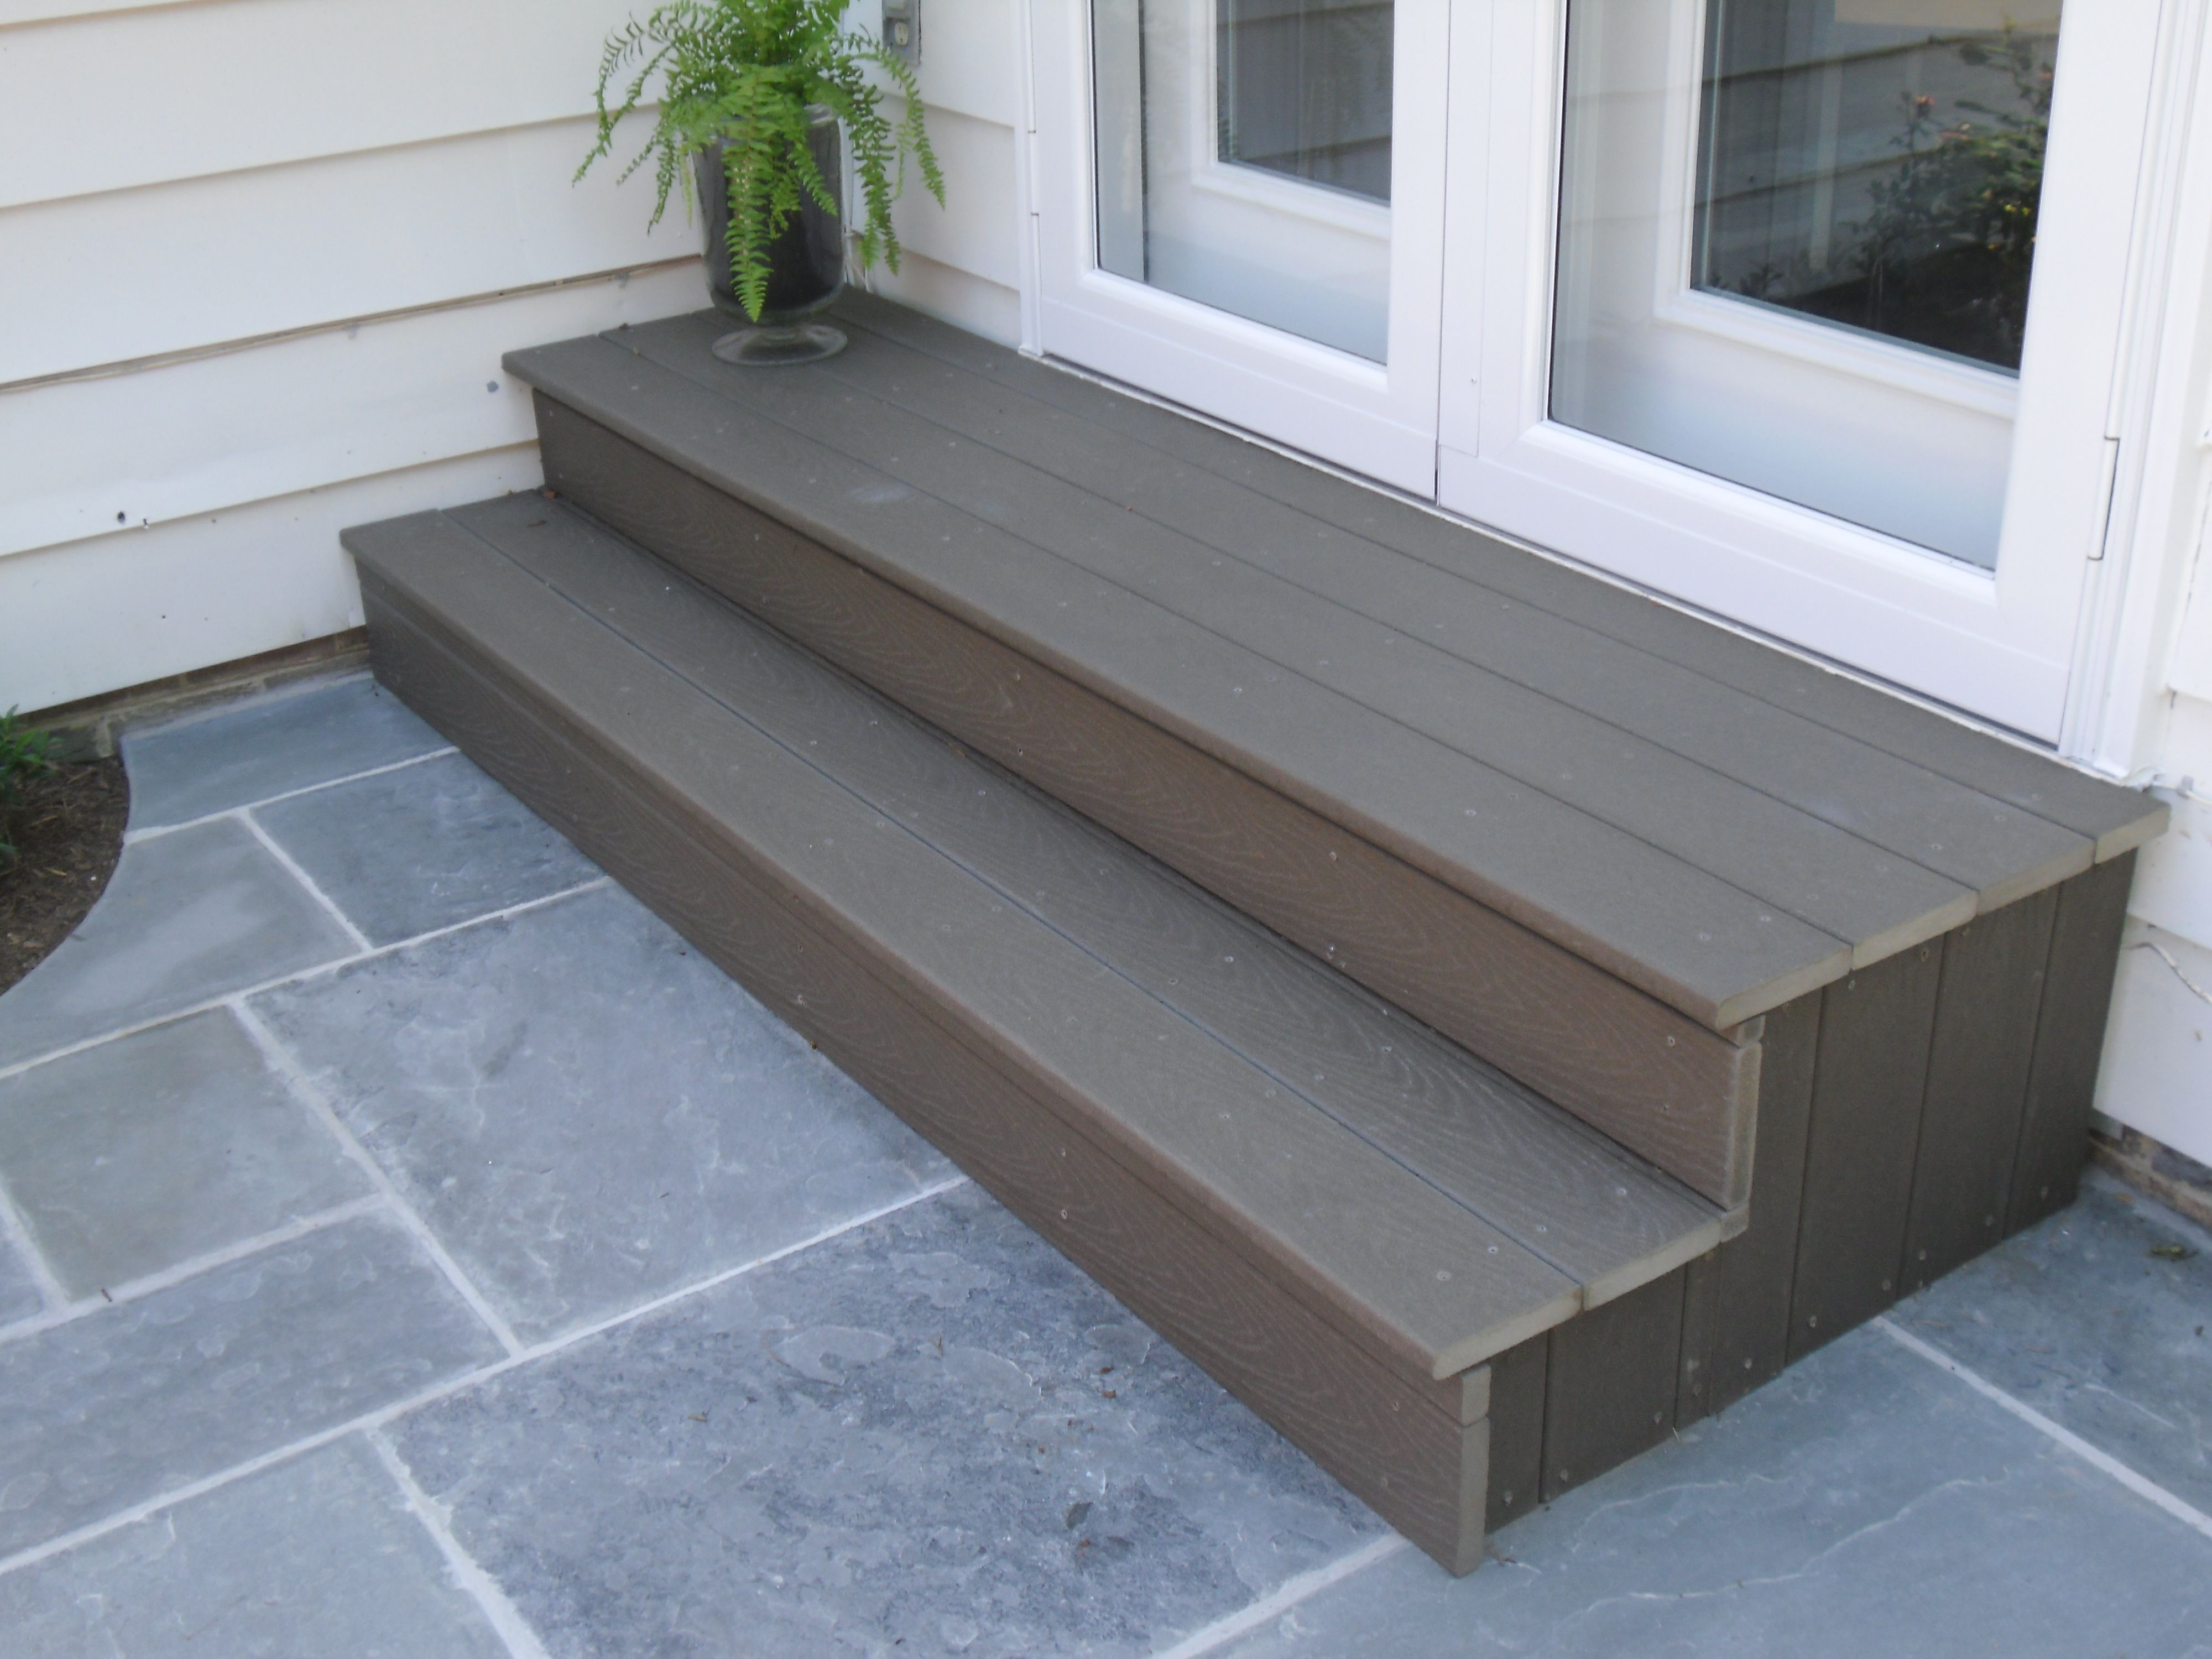 Outdoor steps like this are a great do it yourself accessory to any outdoor steps like this are a great do it yourself accessory to any backyard patio repin to your diy board washington dc area johnsons landscaping solutioingenieria Gallery